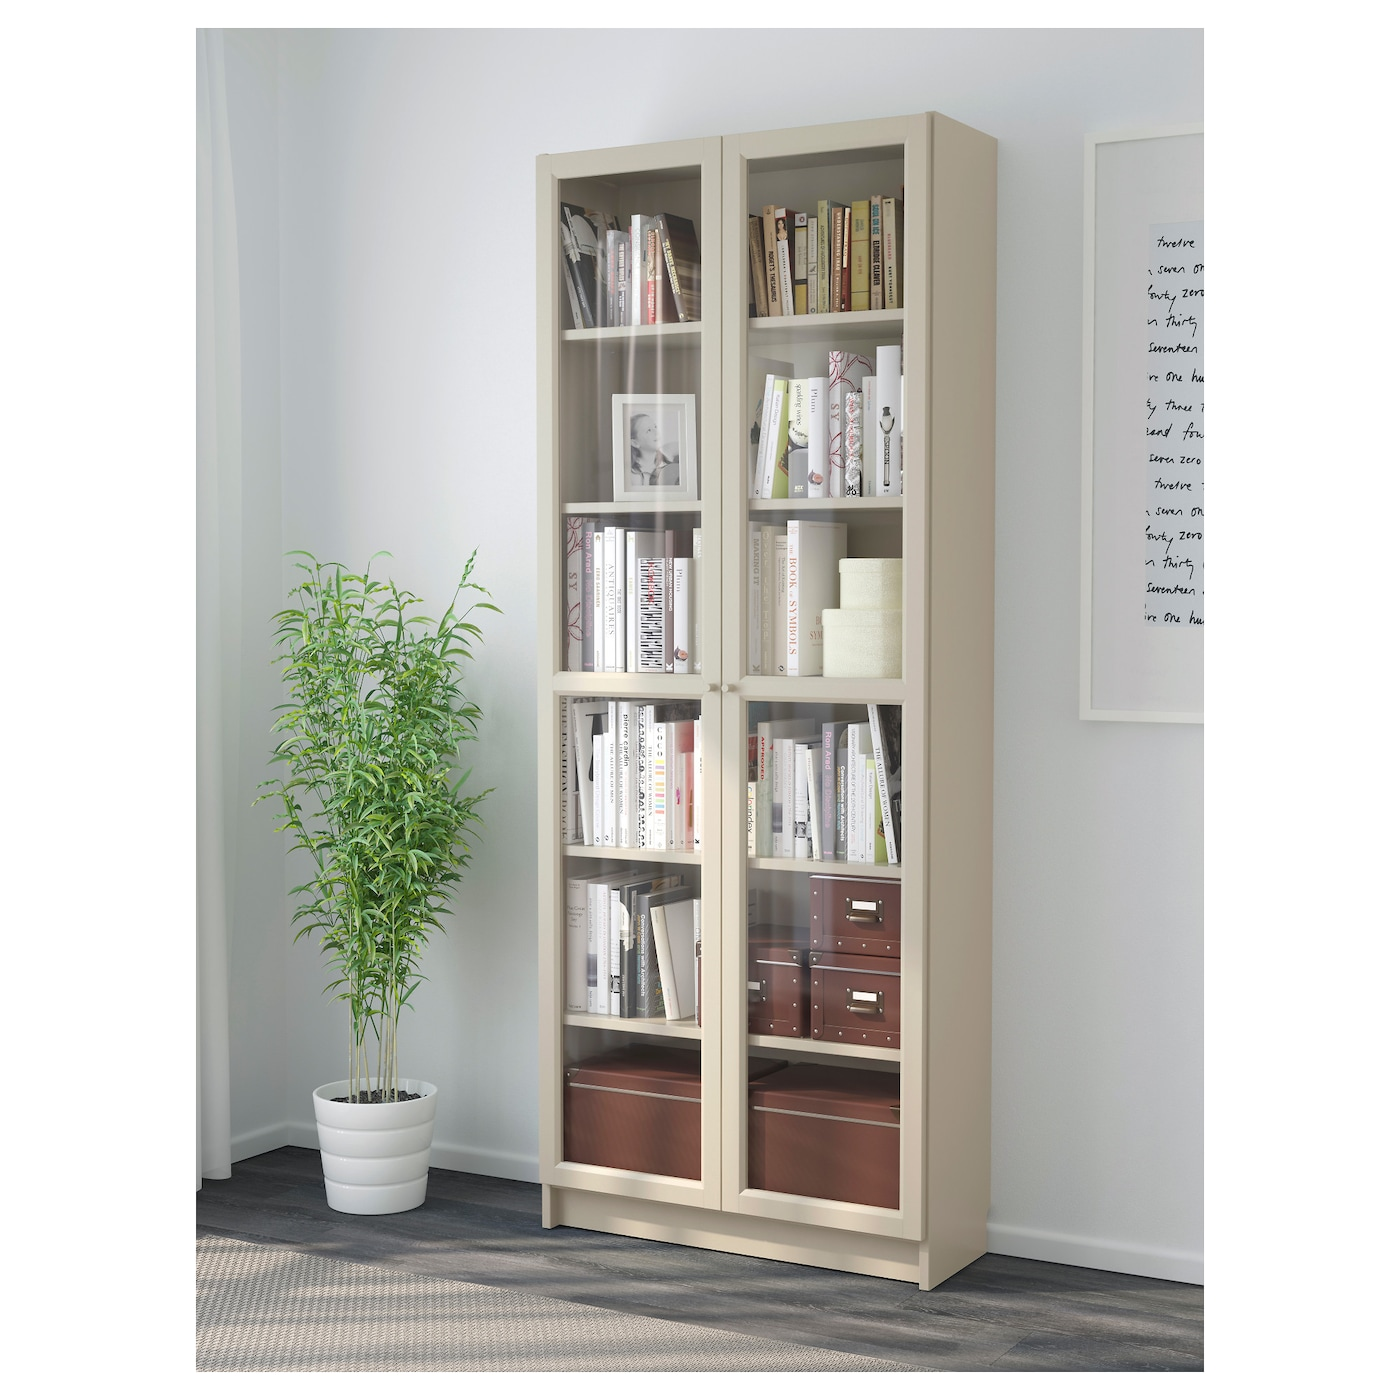 billy bookcase with glass doors beige 80 x 30 x 202 cm ikea. Black Bedroom Furniture Sets. Home Design Ideas